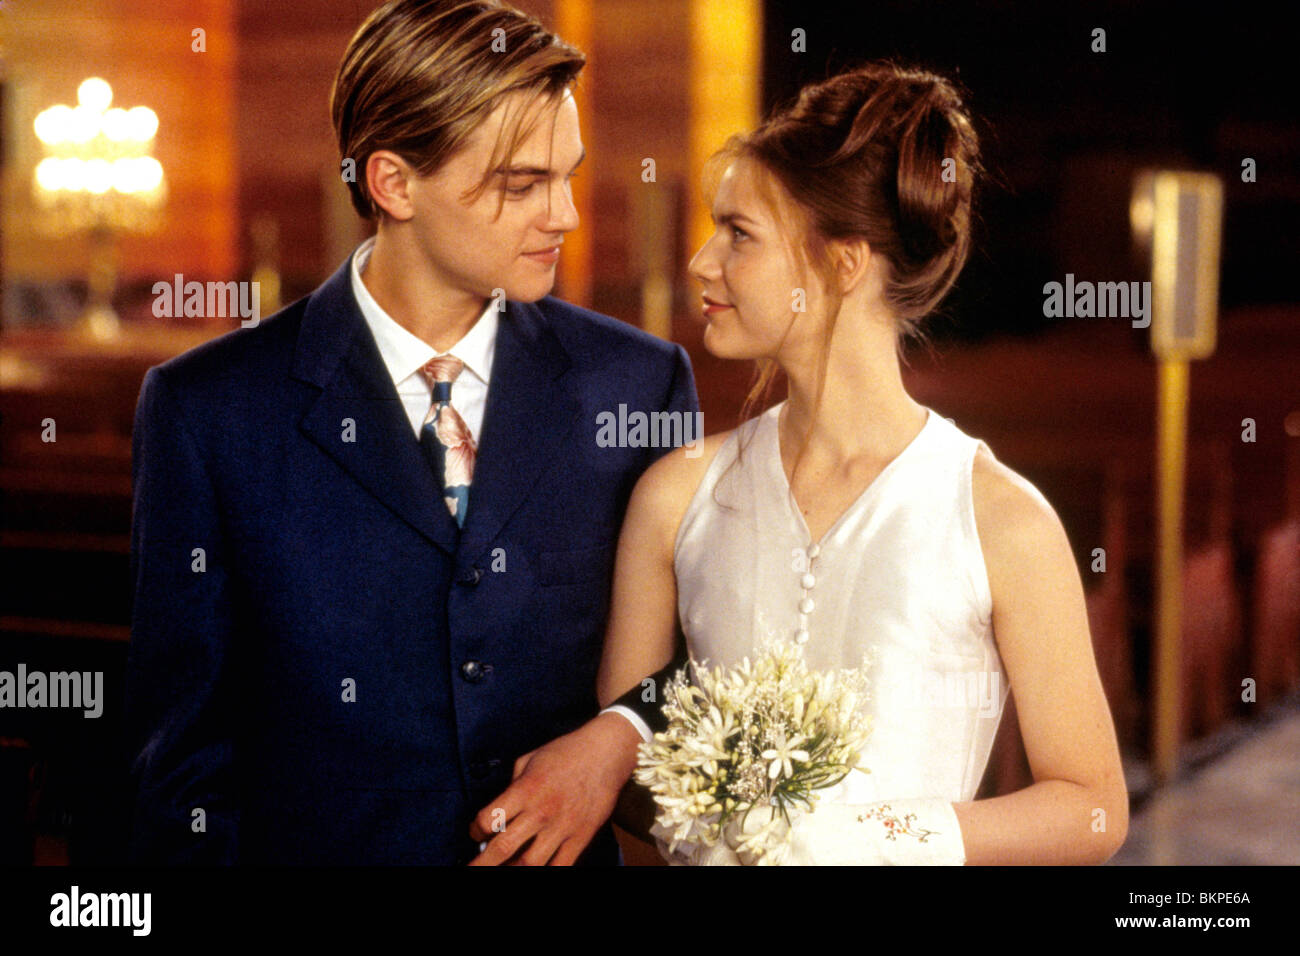 Leonardo Dicaprio And Claire Danes Romeo And Juliet ROMEO AND JULIET LEONA...